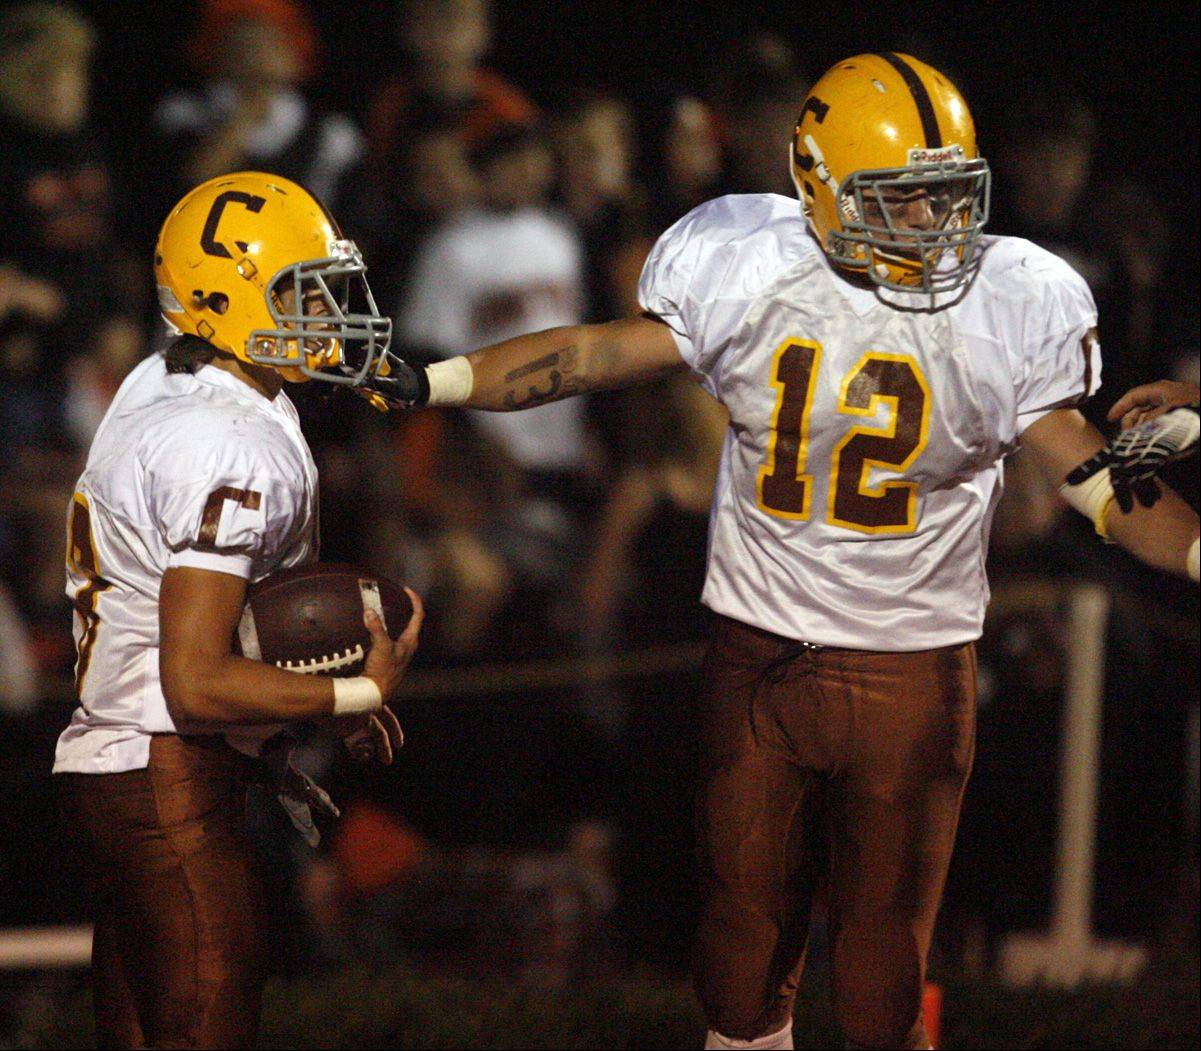 Carmel's Jordan Kos and Michael Panico celebrate after scoring a touchdown against Libertyville last season.